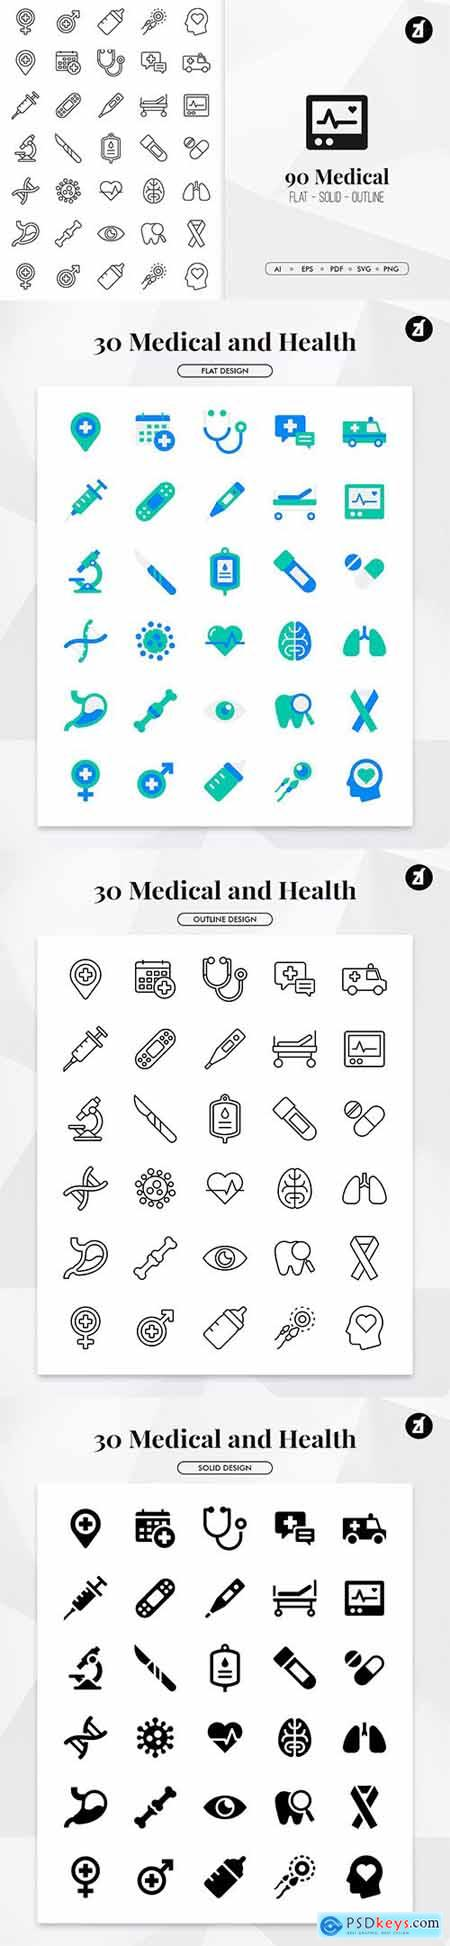 90 medical elements in minimal design